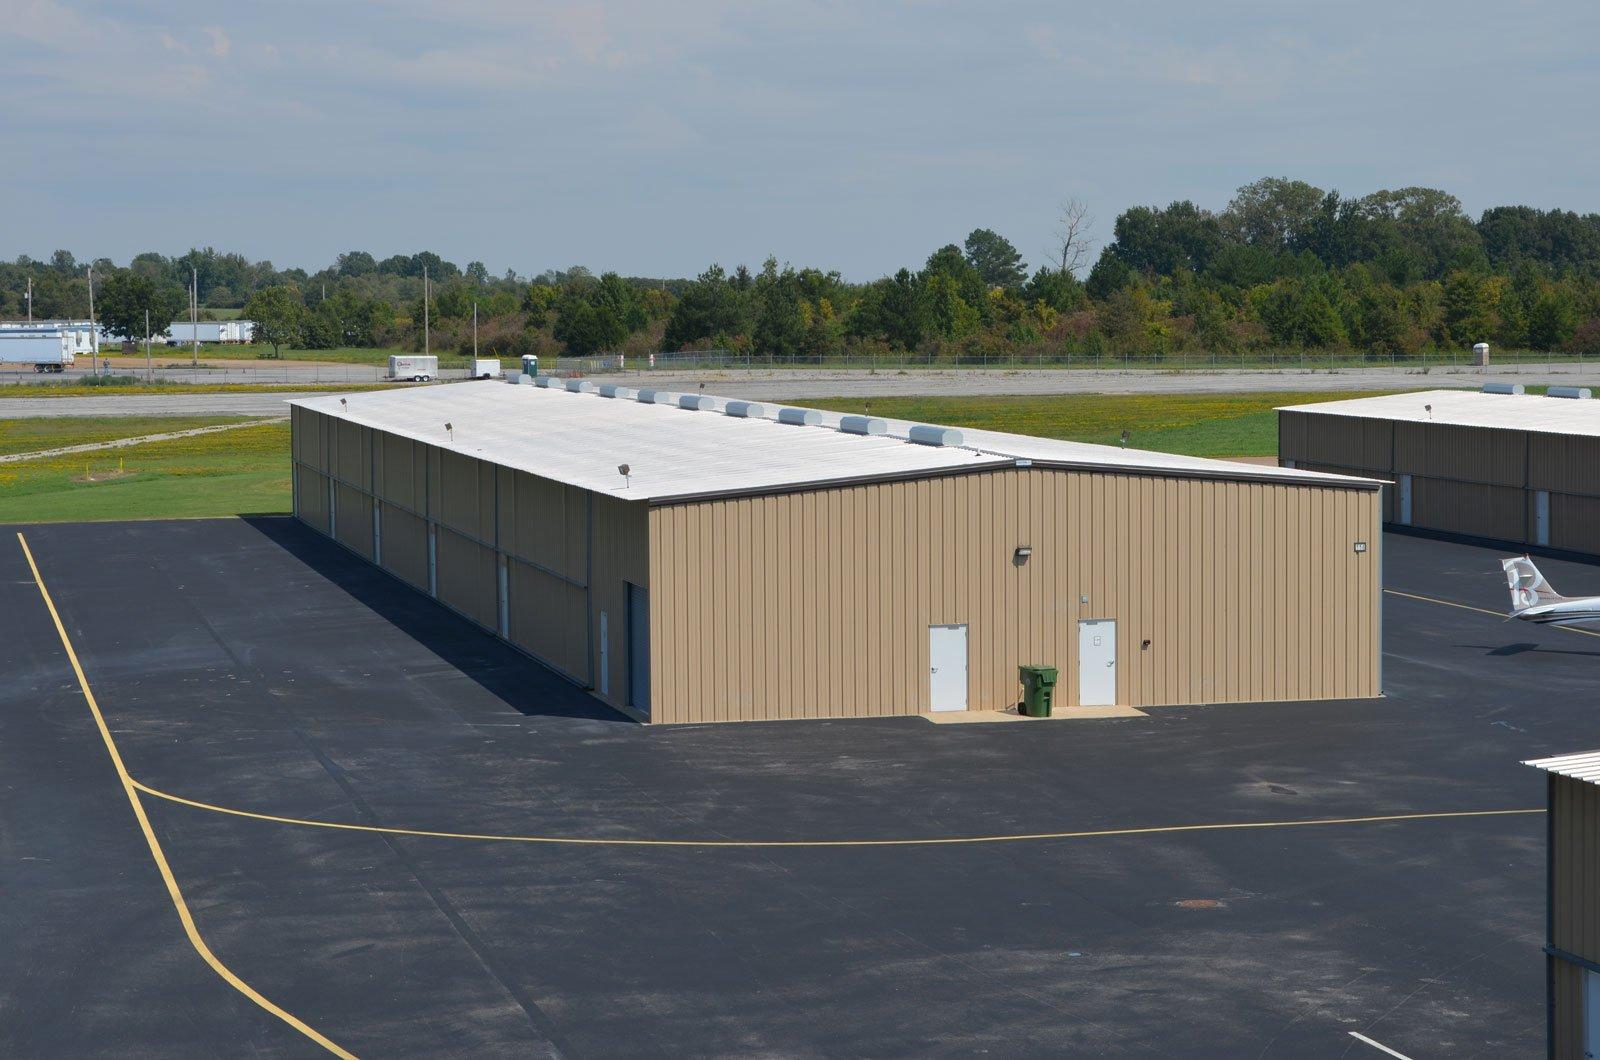 Image of a T-hangar at the Memphis Millington Airport